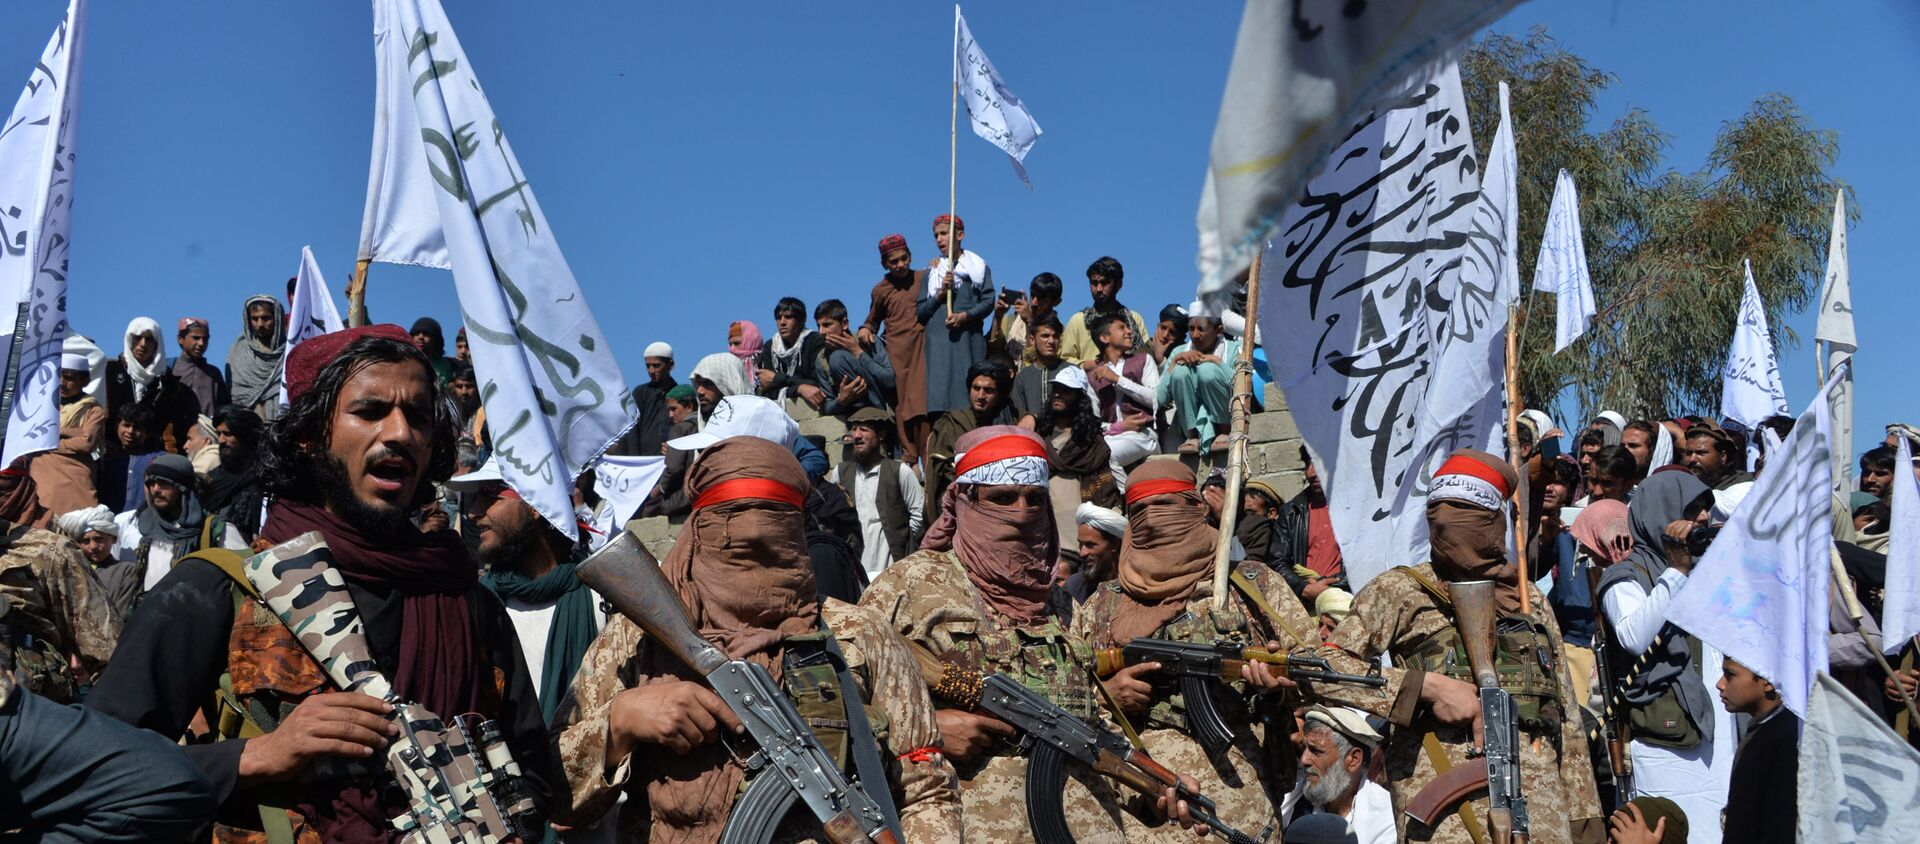 Afghan Taliban militants and villagers attend a gathering as they celebrate the peace deal and their victory in the Afghan conflict on US in Afghanistan, in Alingar district of Laghman Province on March 2, 2020 - Sputnik International, 1920, 16.08.2021